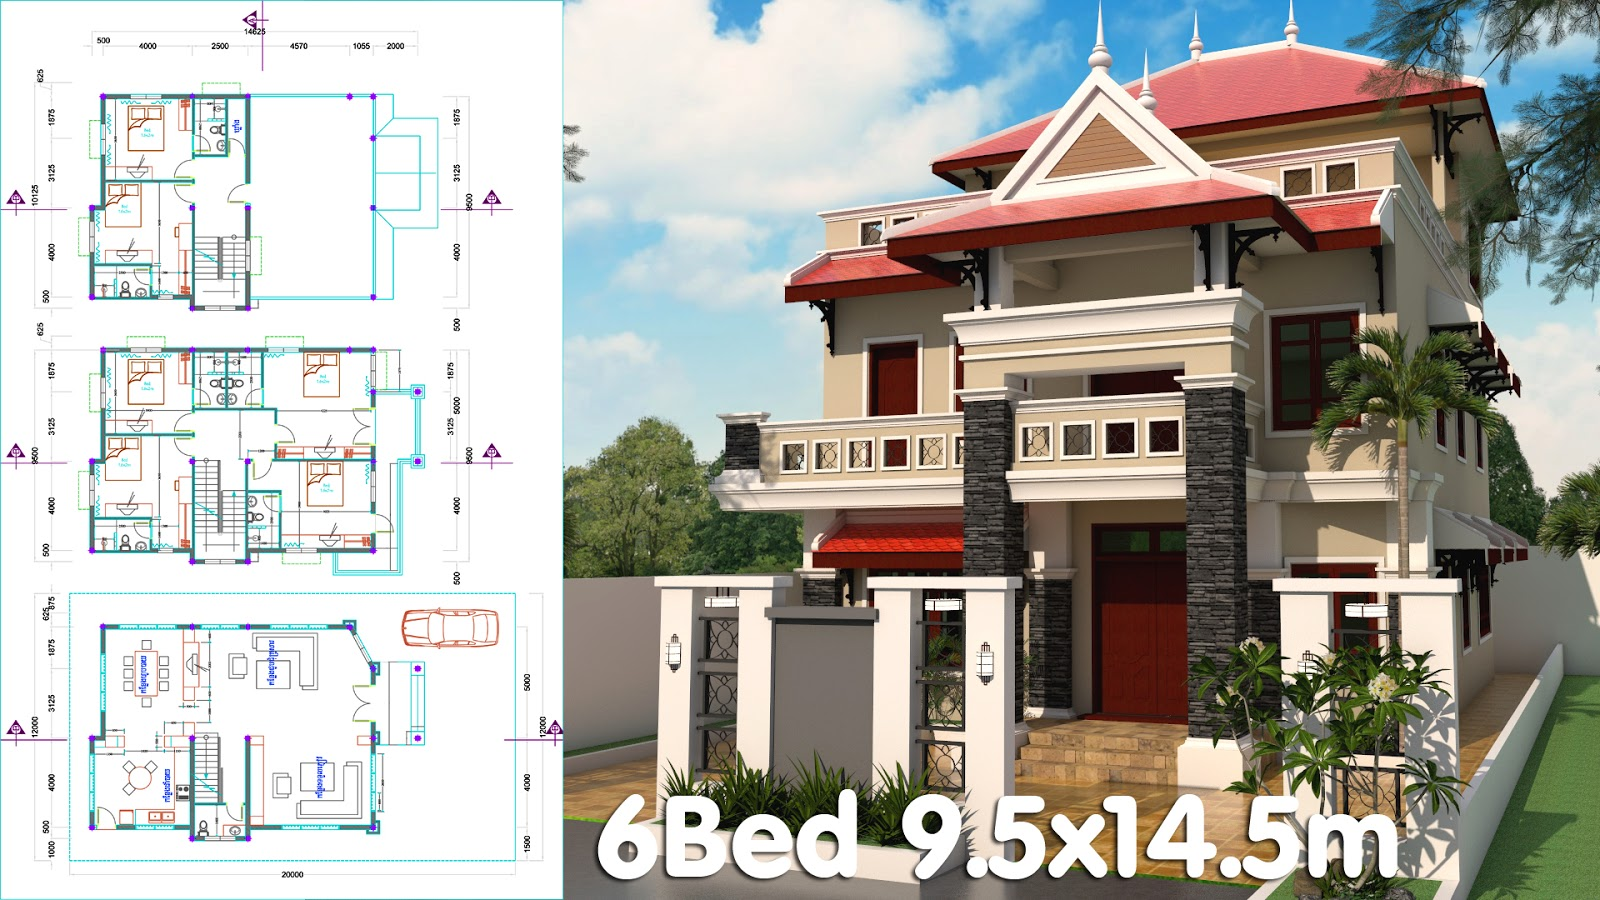 3 story house plan with 6 bedrooms ma house plan for 3 story house plans